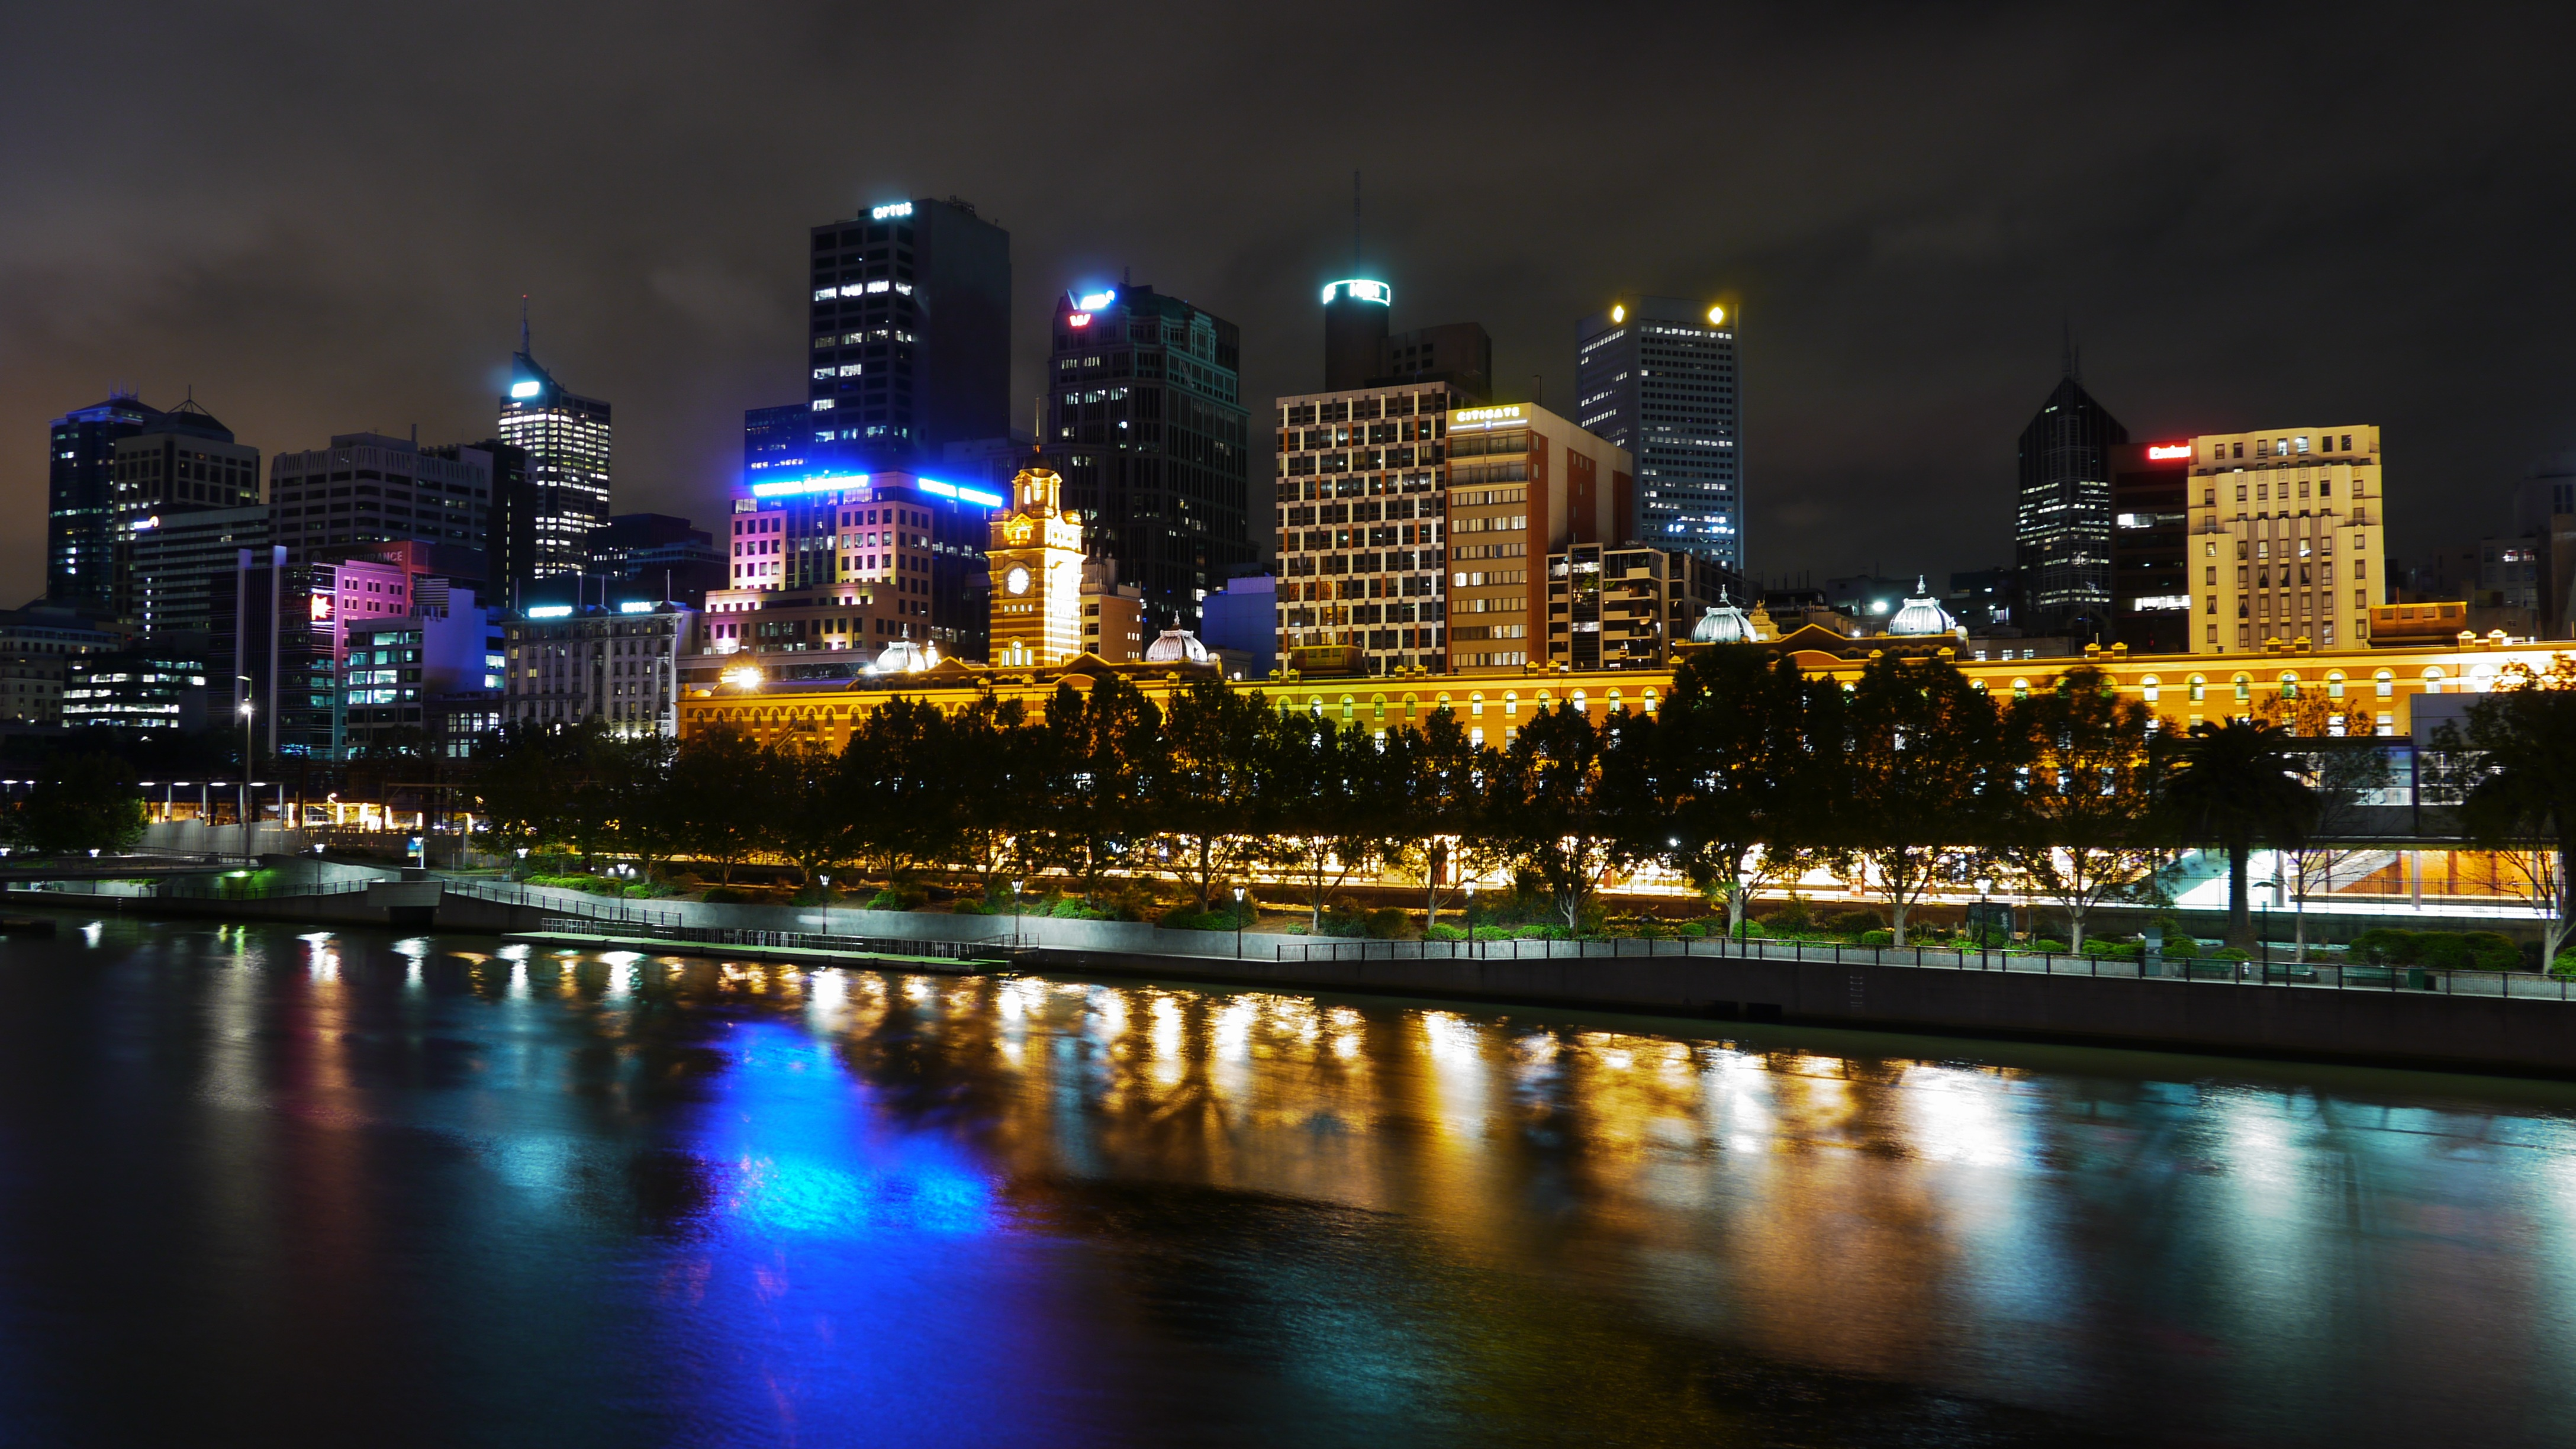 Skyline of Melbourne by the Yarra River, Victoria, Australia.